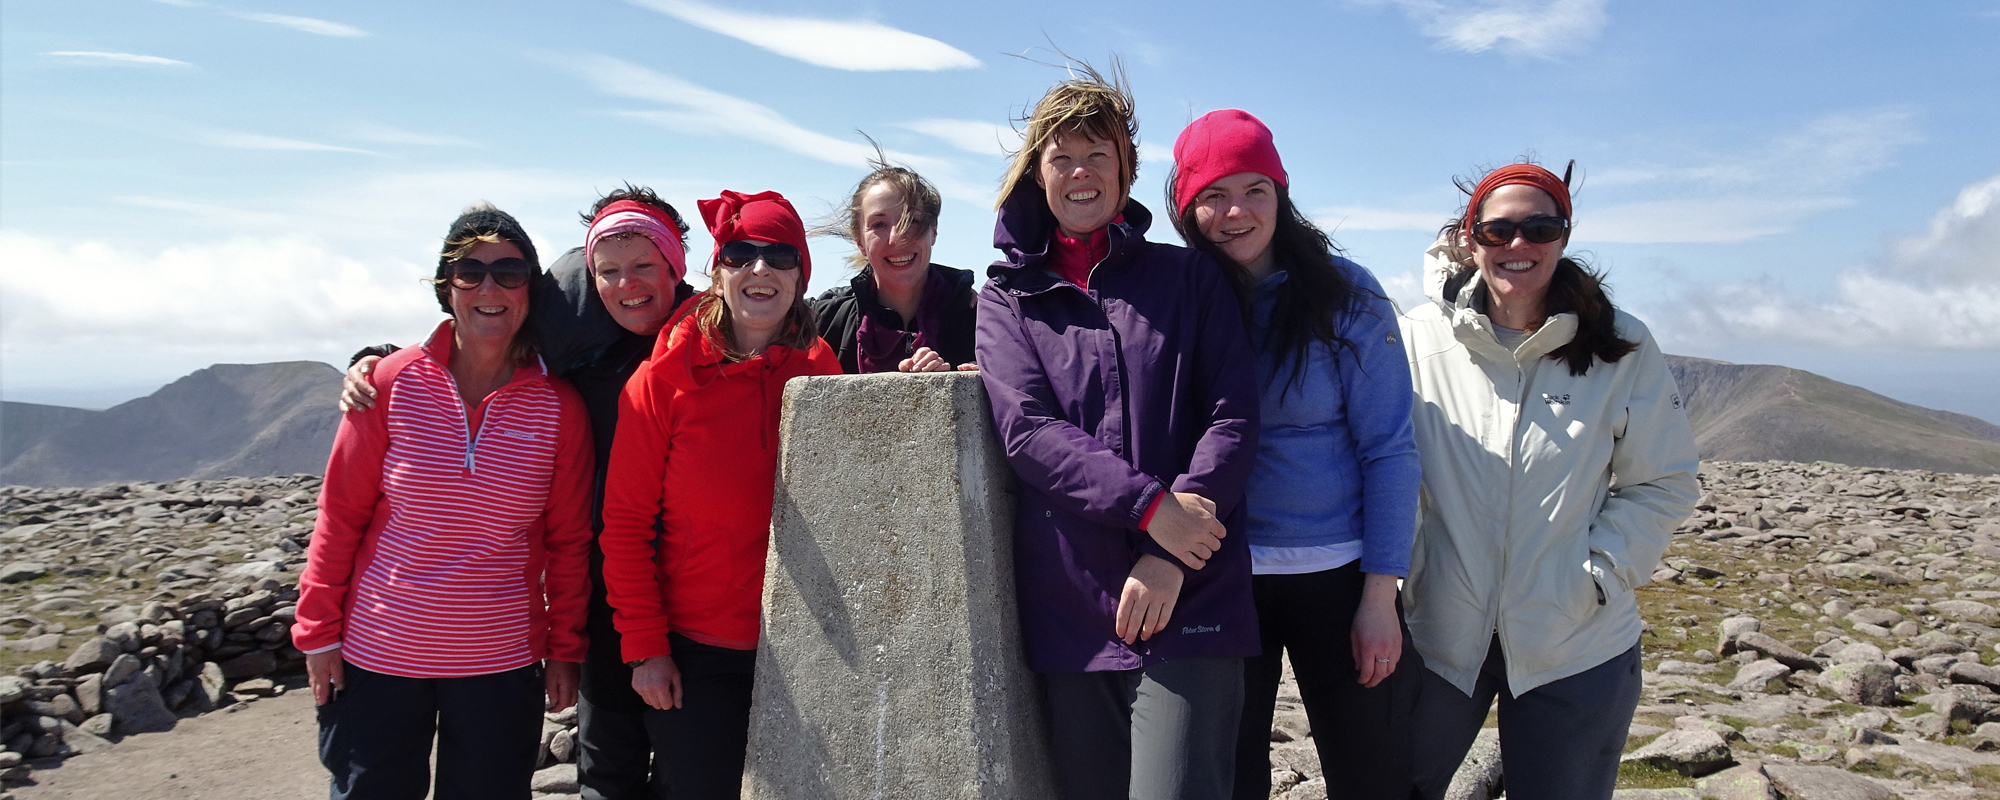 A group of women smile on a mountain summit in the Cairngorms